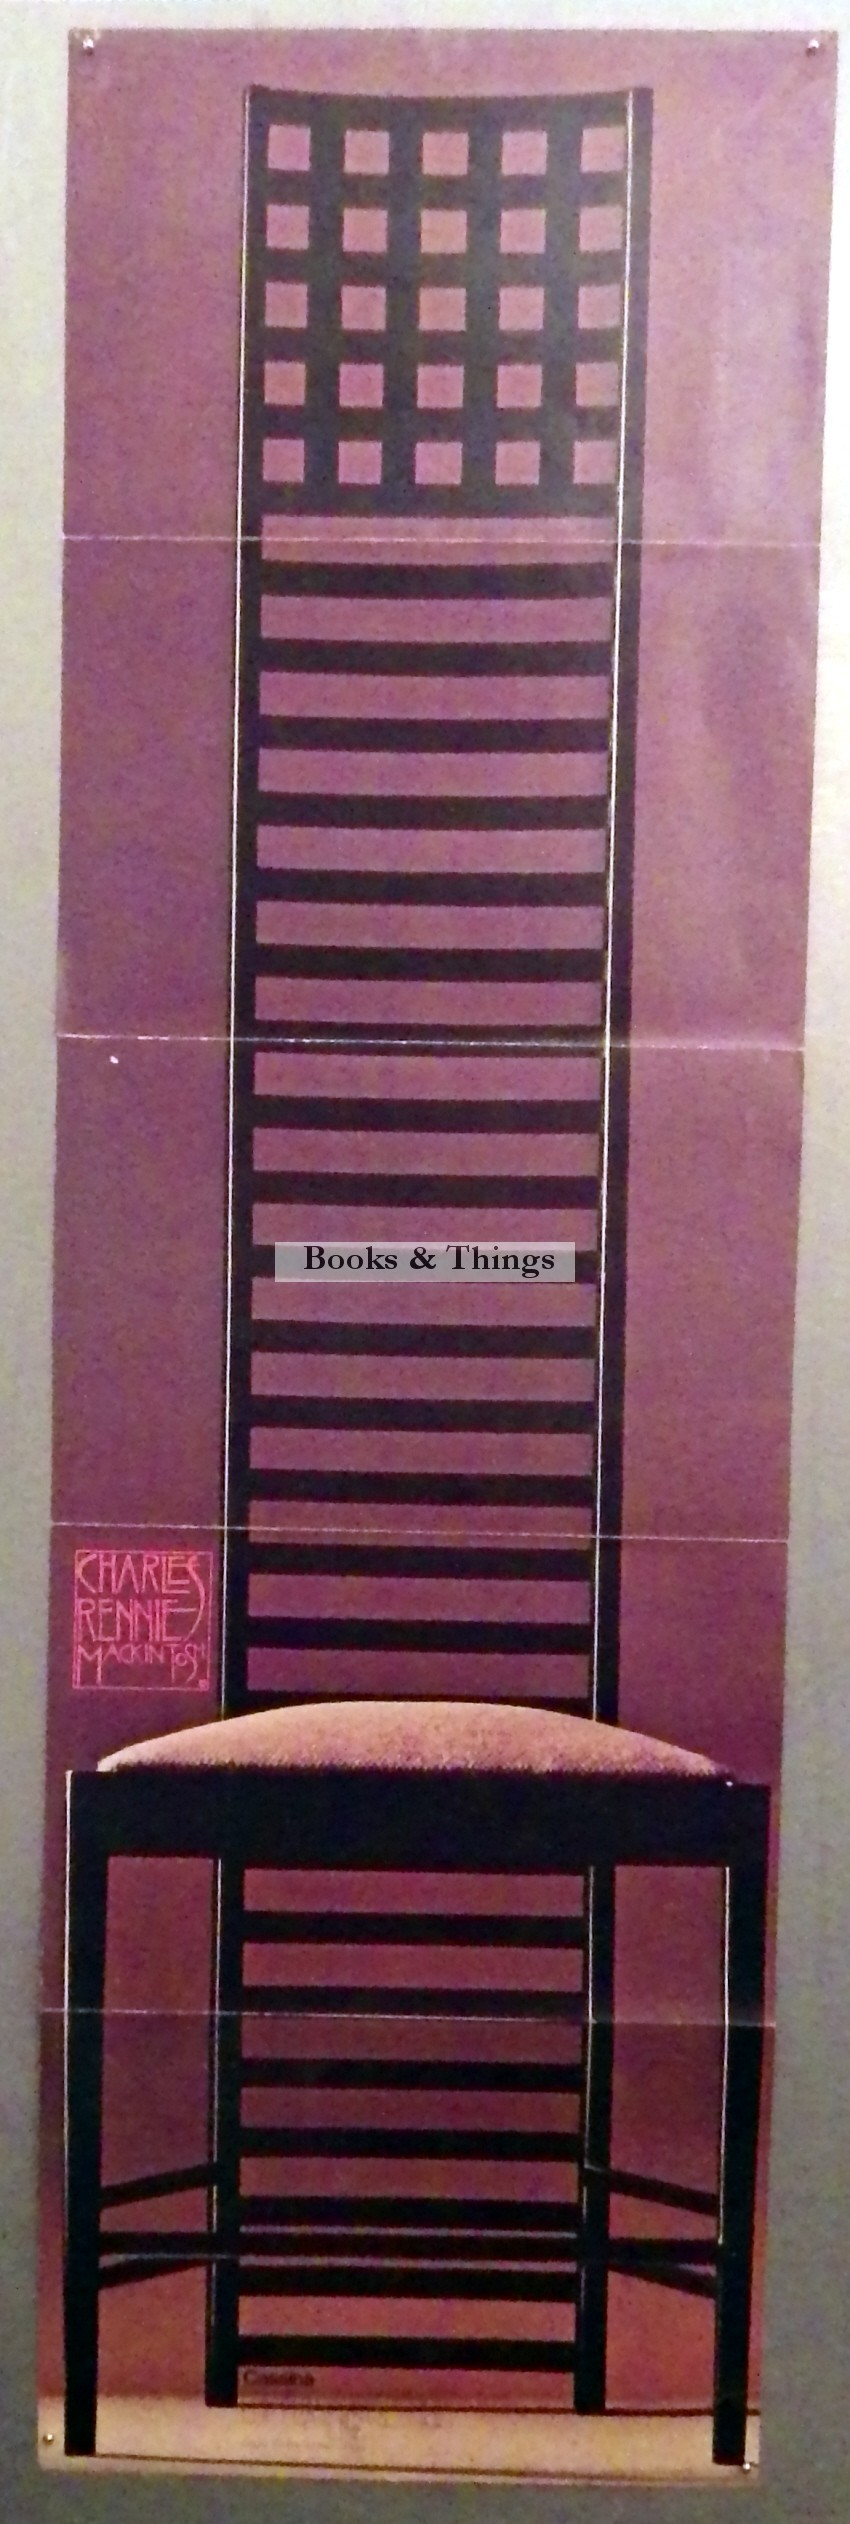 Charles Rennie Mackintosh chair poster